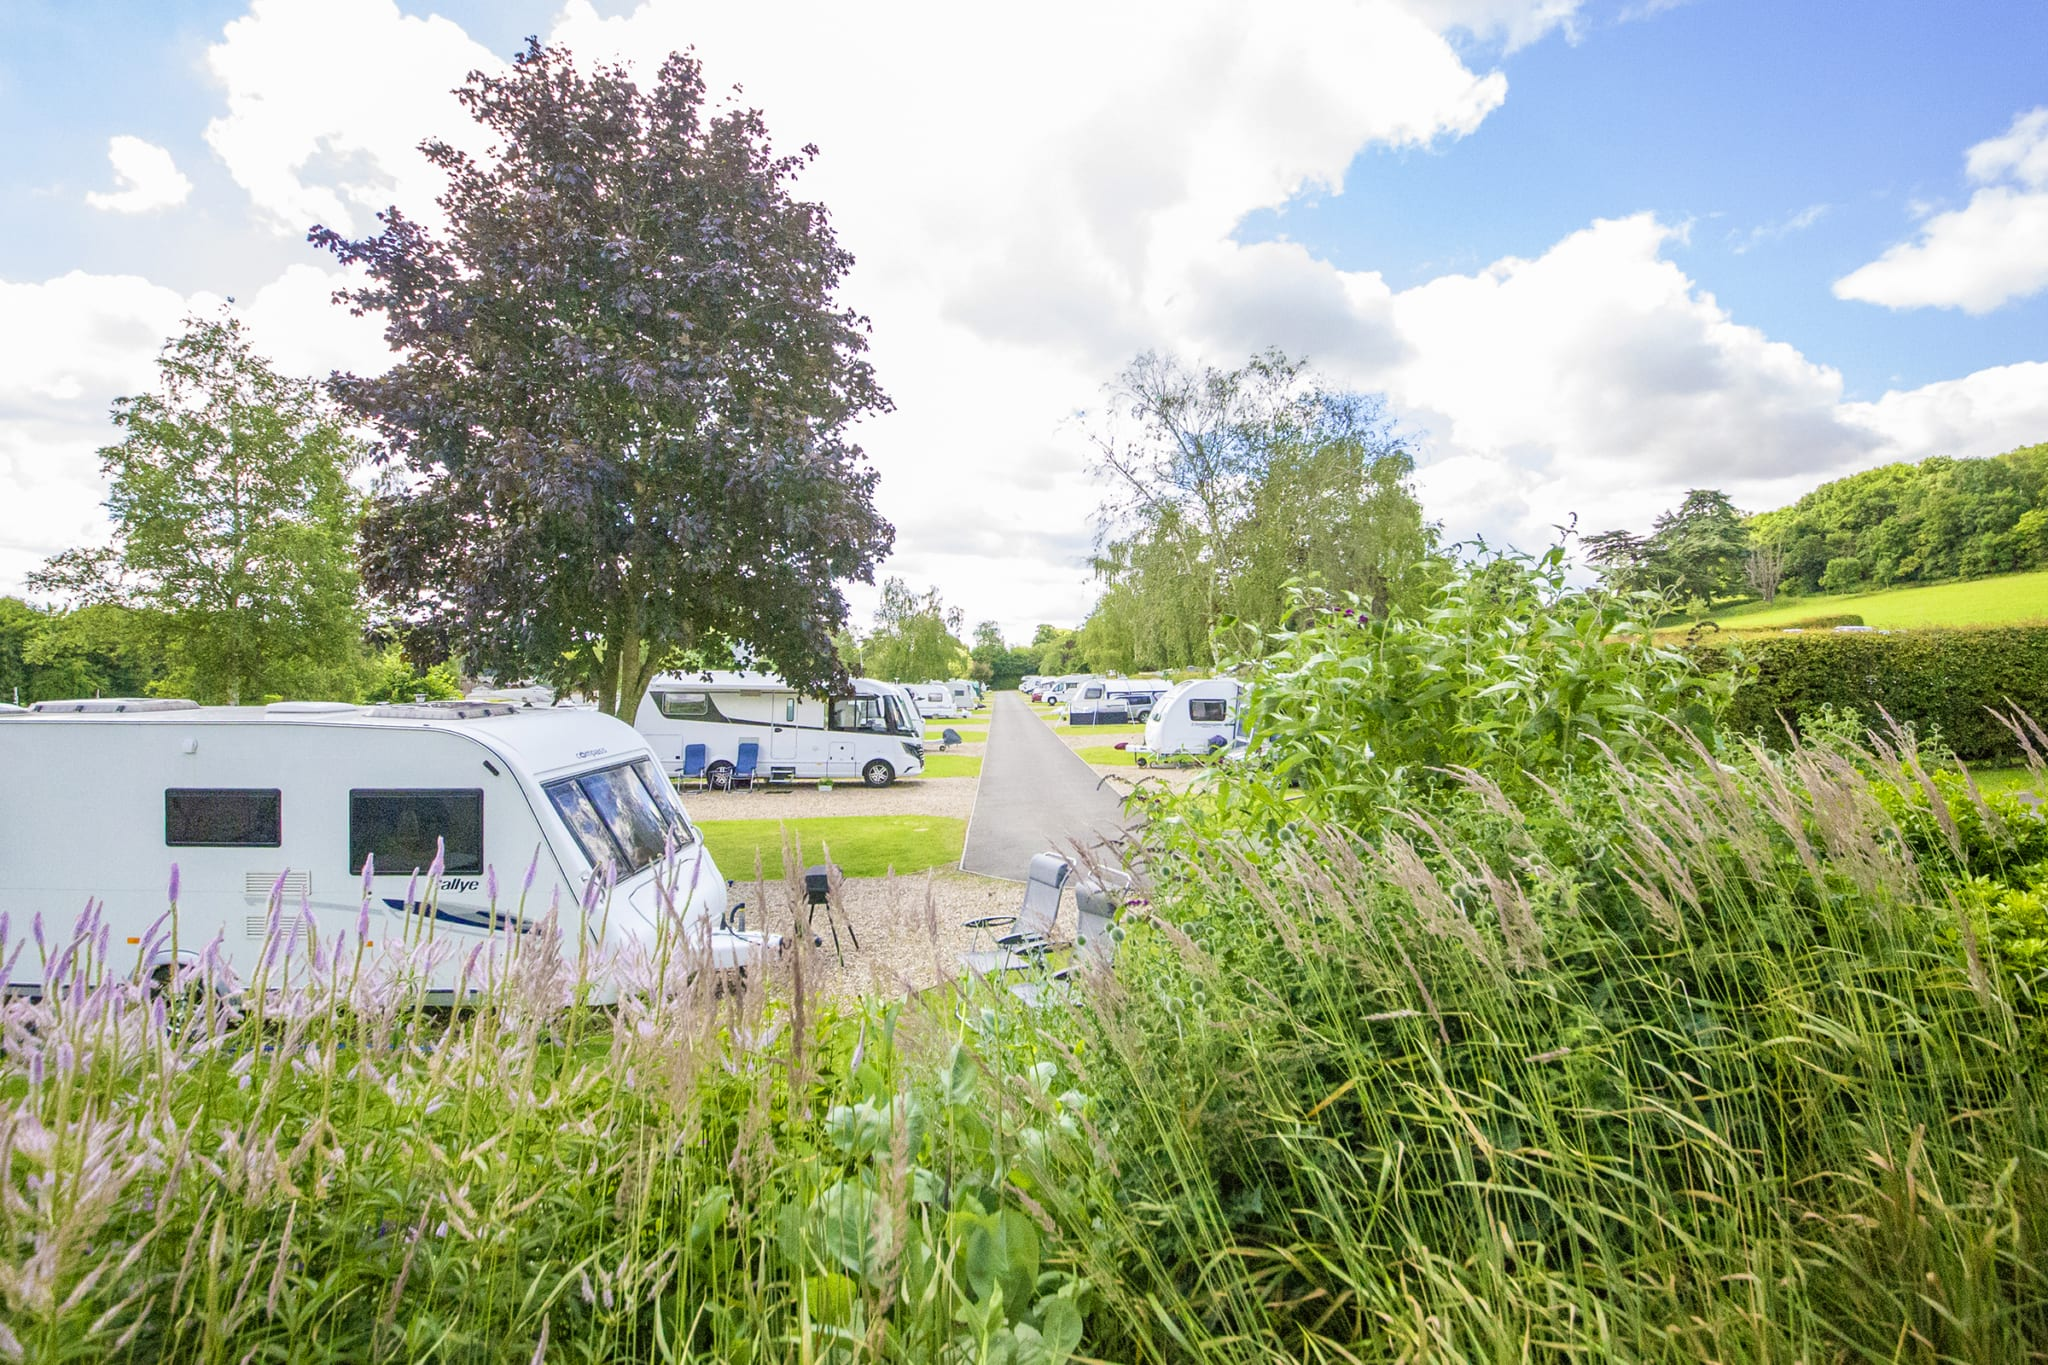 Swiss Farm Touring & Camping - Henley on Thames